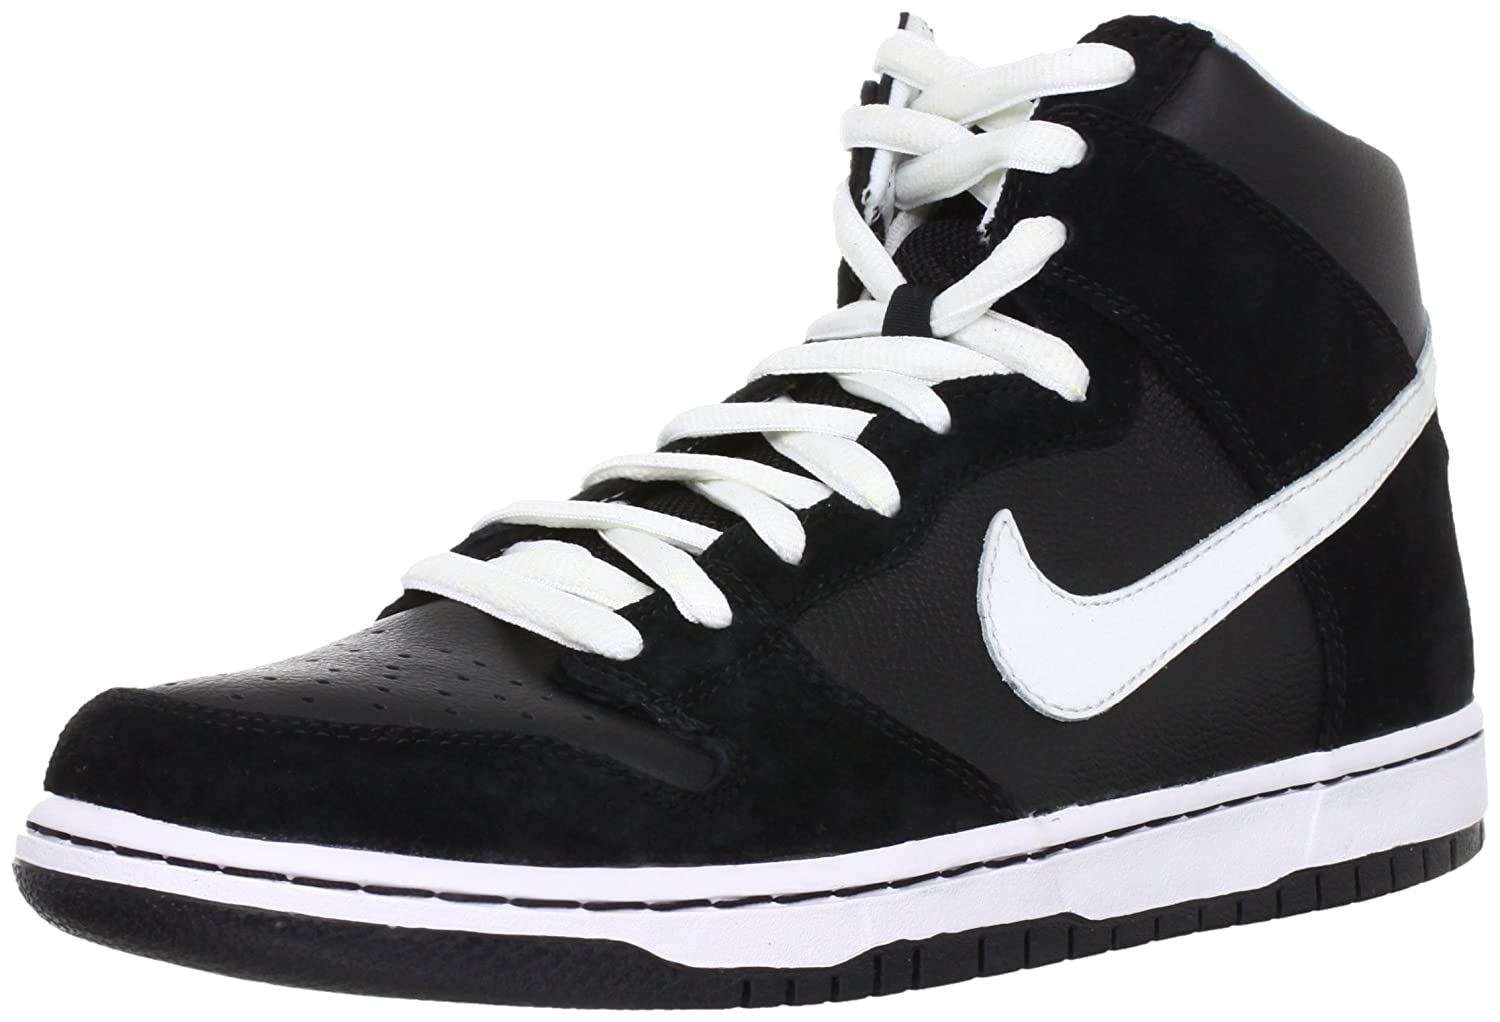 high top nike skate shoes nike tailwind 4 womens. Black Bedroom Furniture Sets. Home Design Ideas